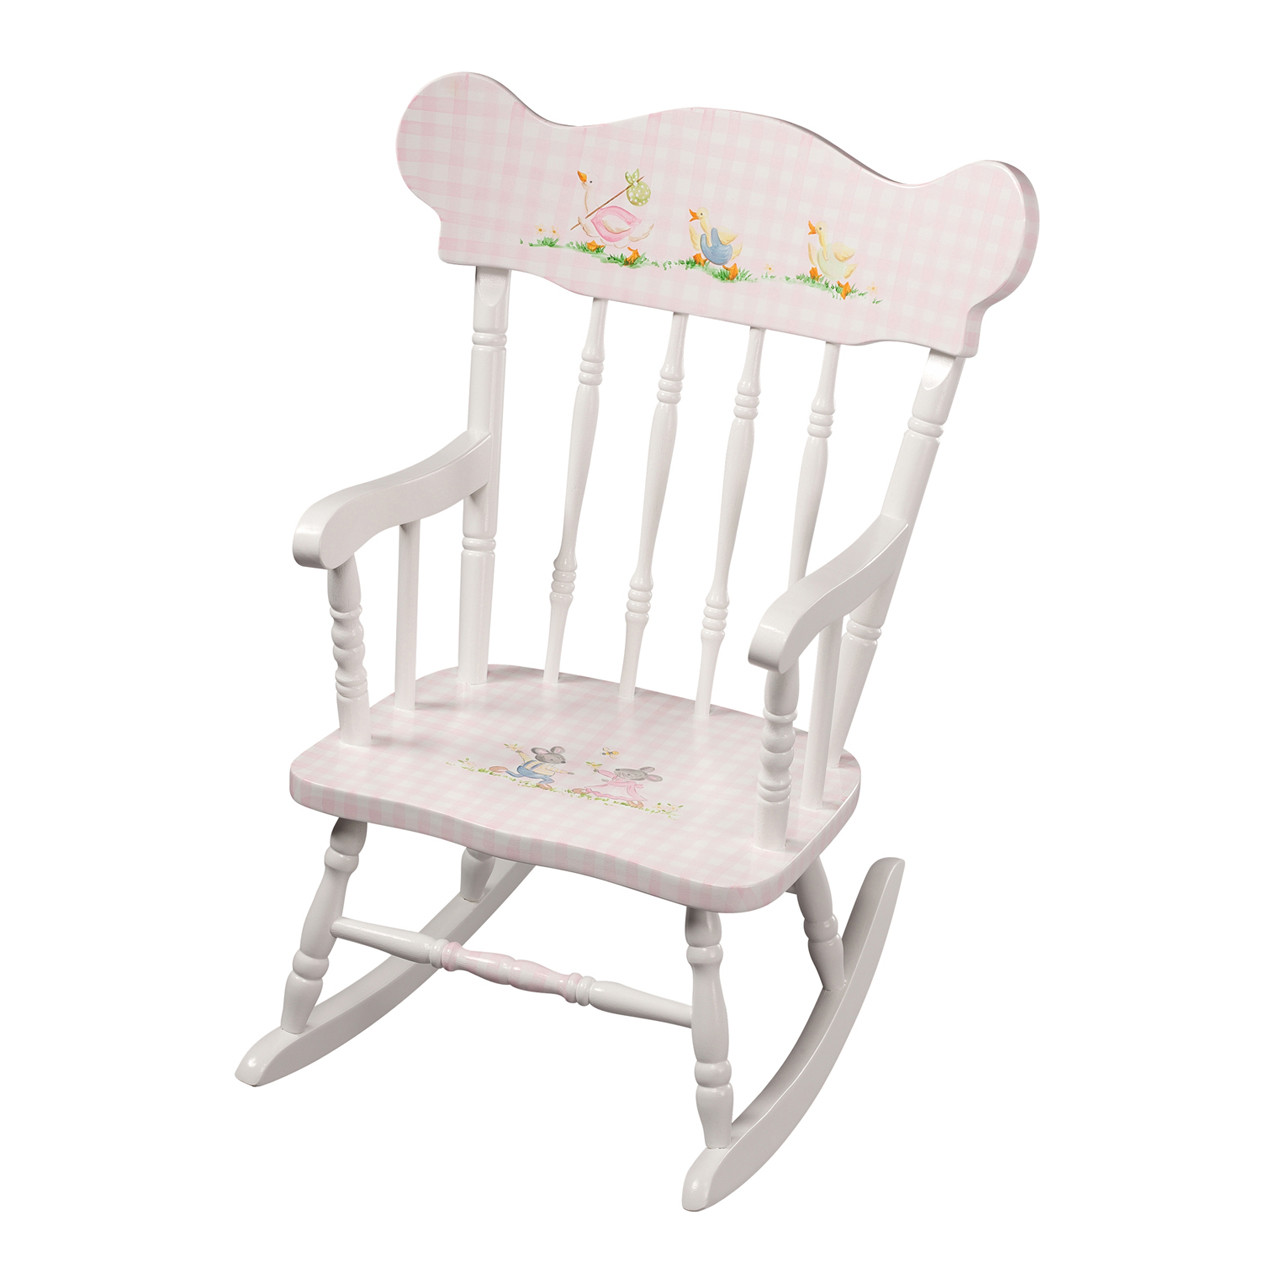 Incredible Childs Rocking Chair Ibusinesslaw Wood Chair Design Ideas Ibusinesslaworg